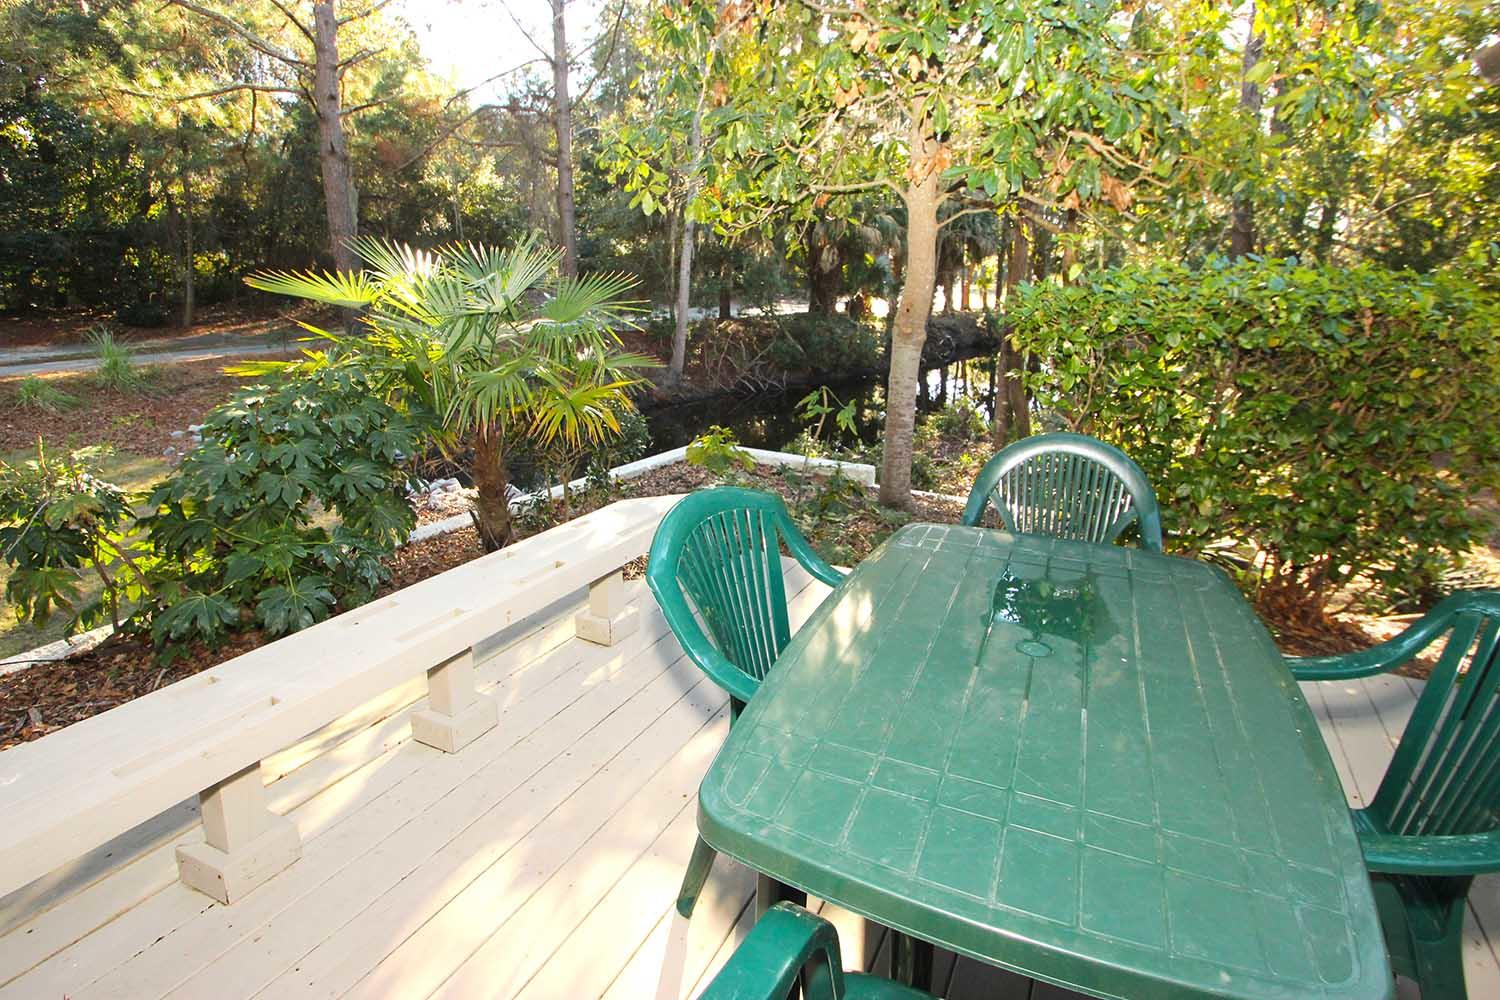 Back deck and table